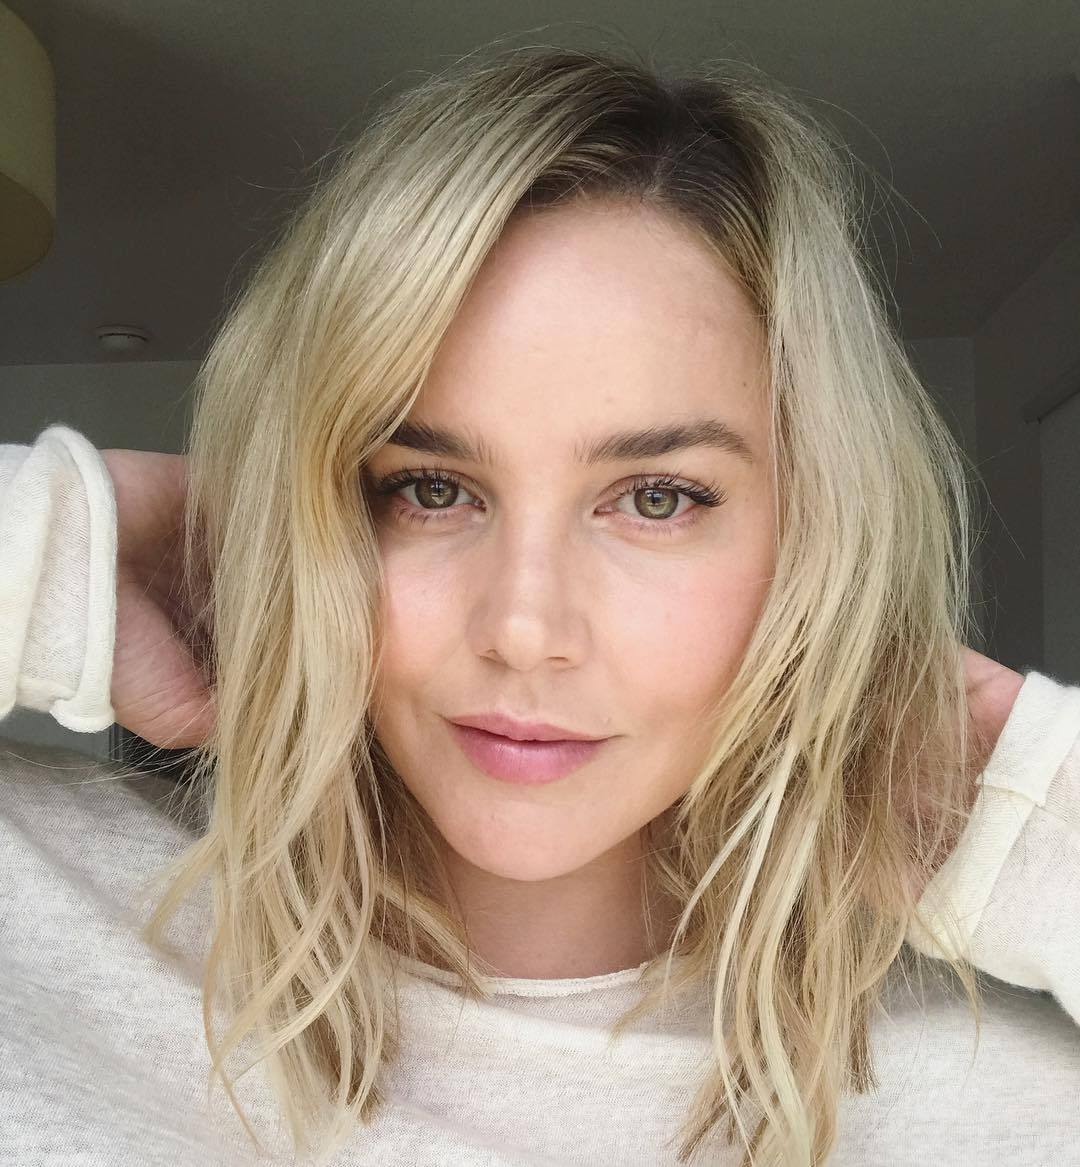 Abbie Cornish no makeup lol < hirni < urTHEidiot incel .